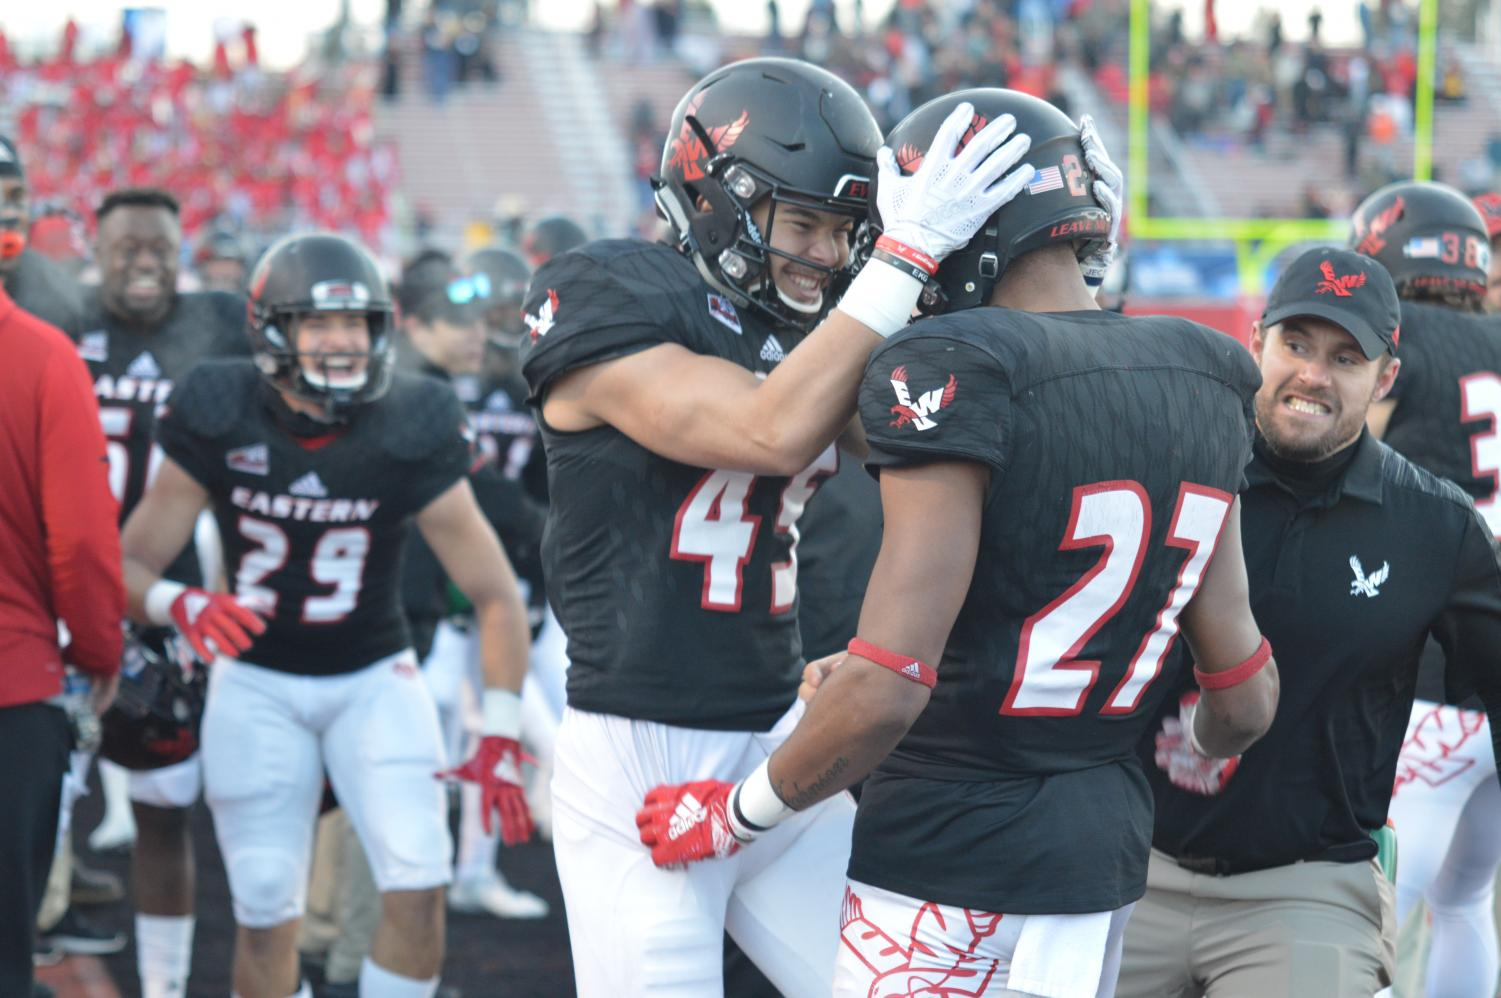 Sophomore Tamir Hill celebrates with Sophomore Kedrick Johnson after Johnson returned a blocked field goal for a touchdown at the end of the first half. The Eagles scored 13 points on special teams and seven on defense.